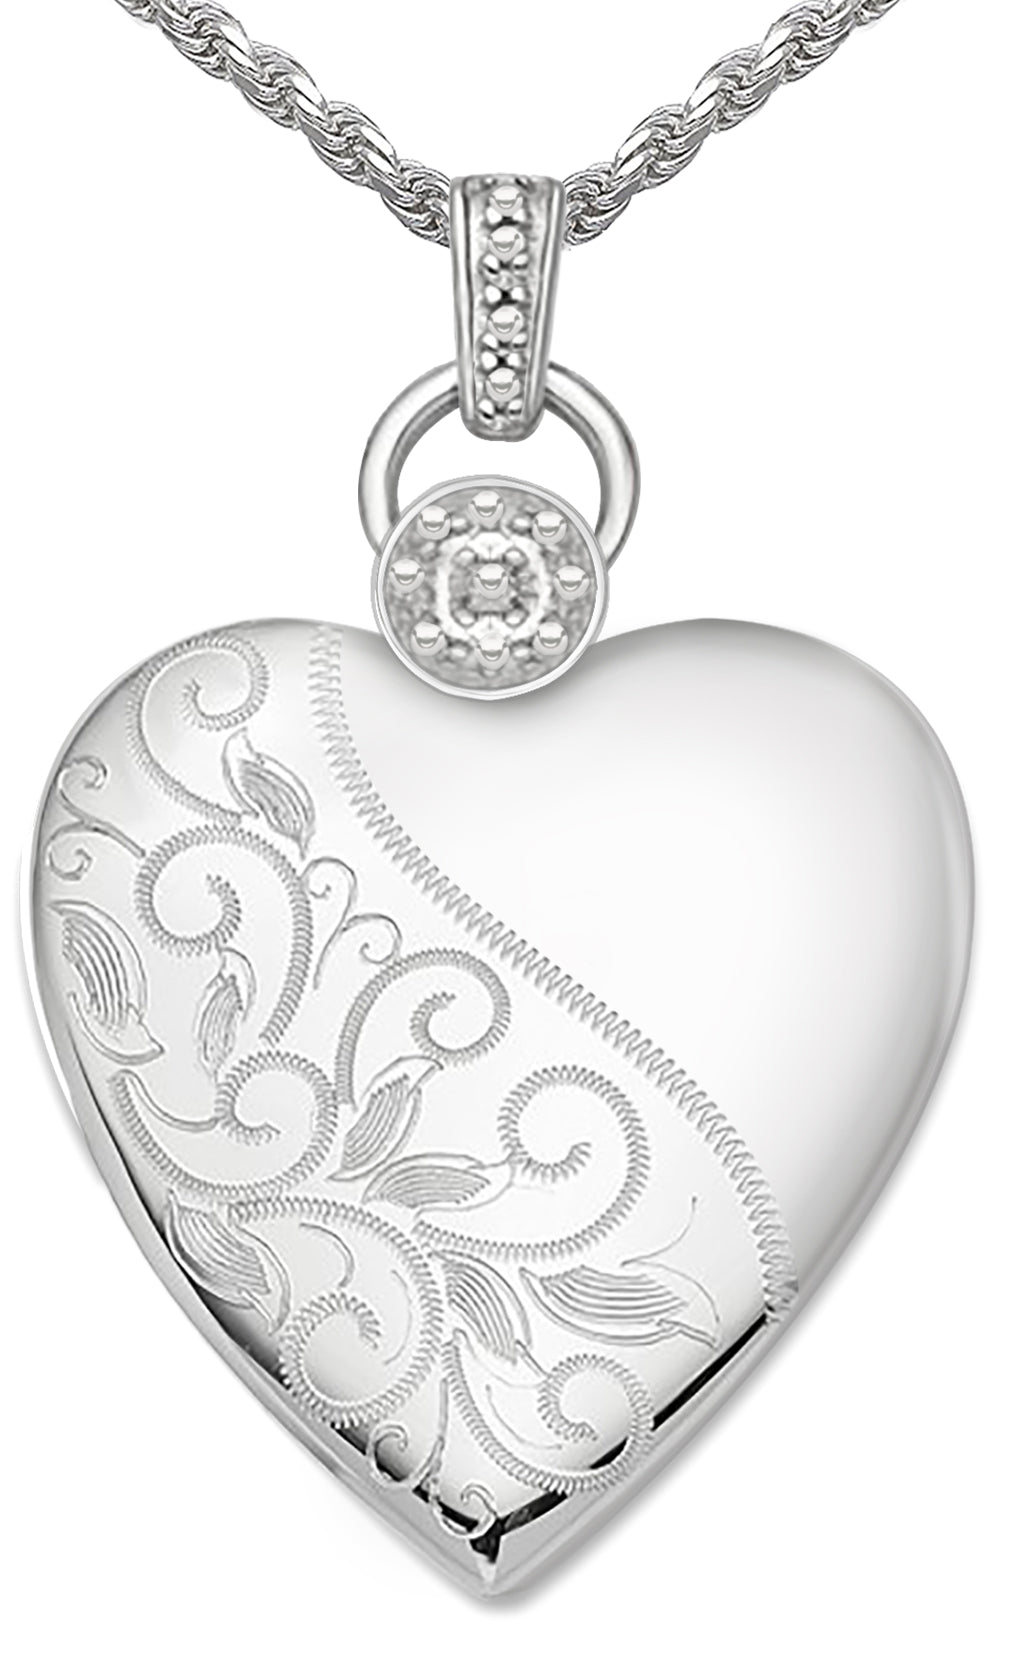 Heart Necklace - Silver Necklace With Floral 2 Photo